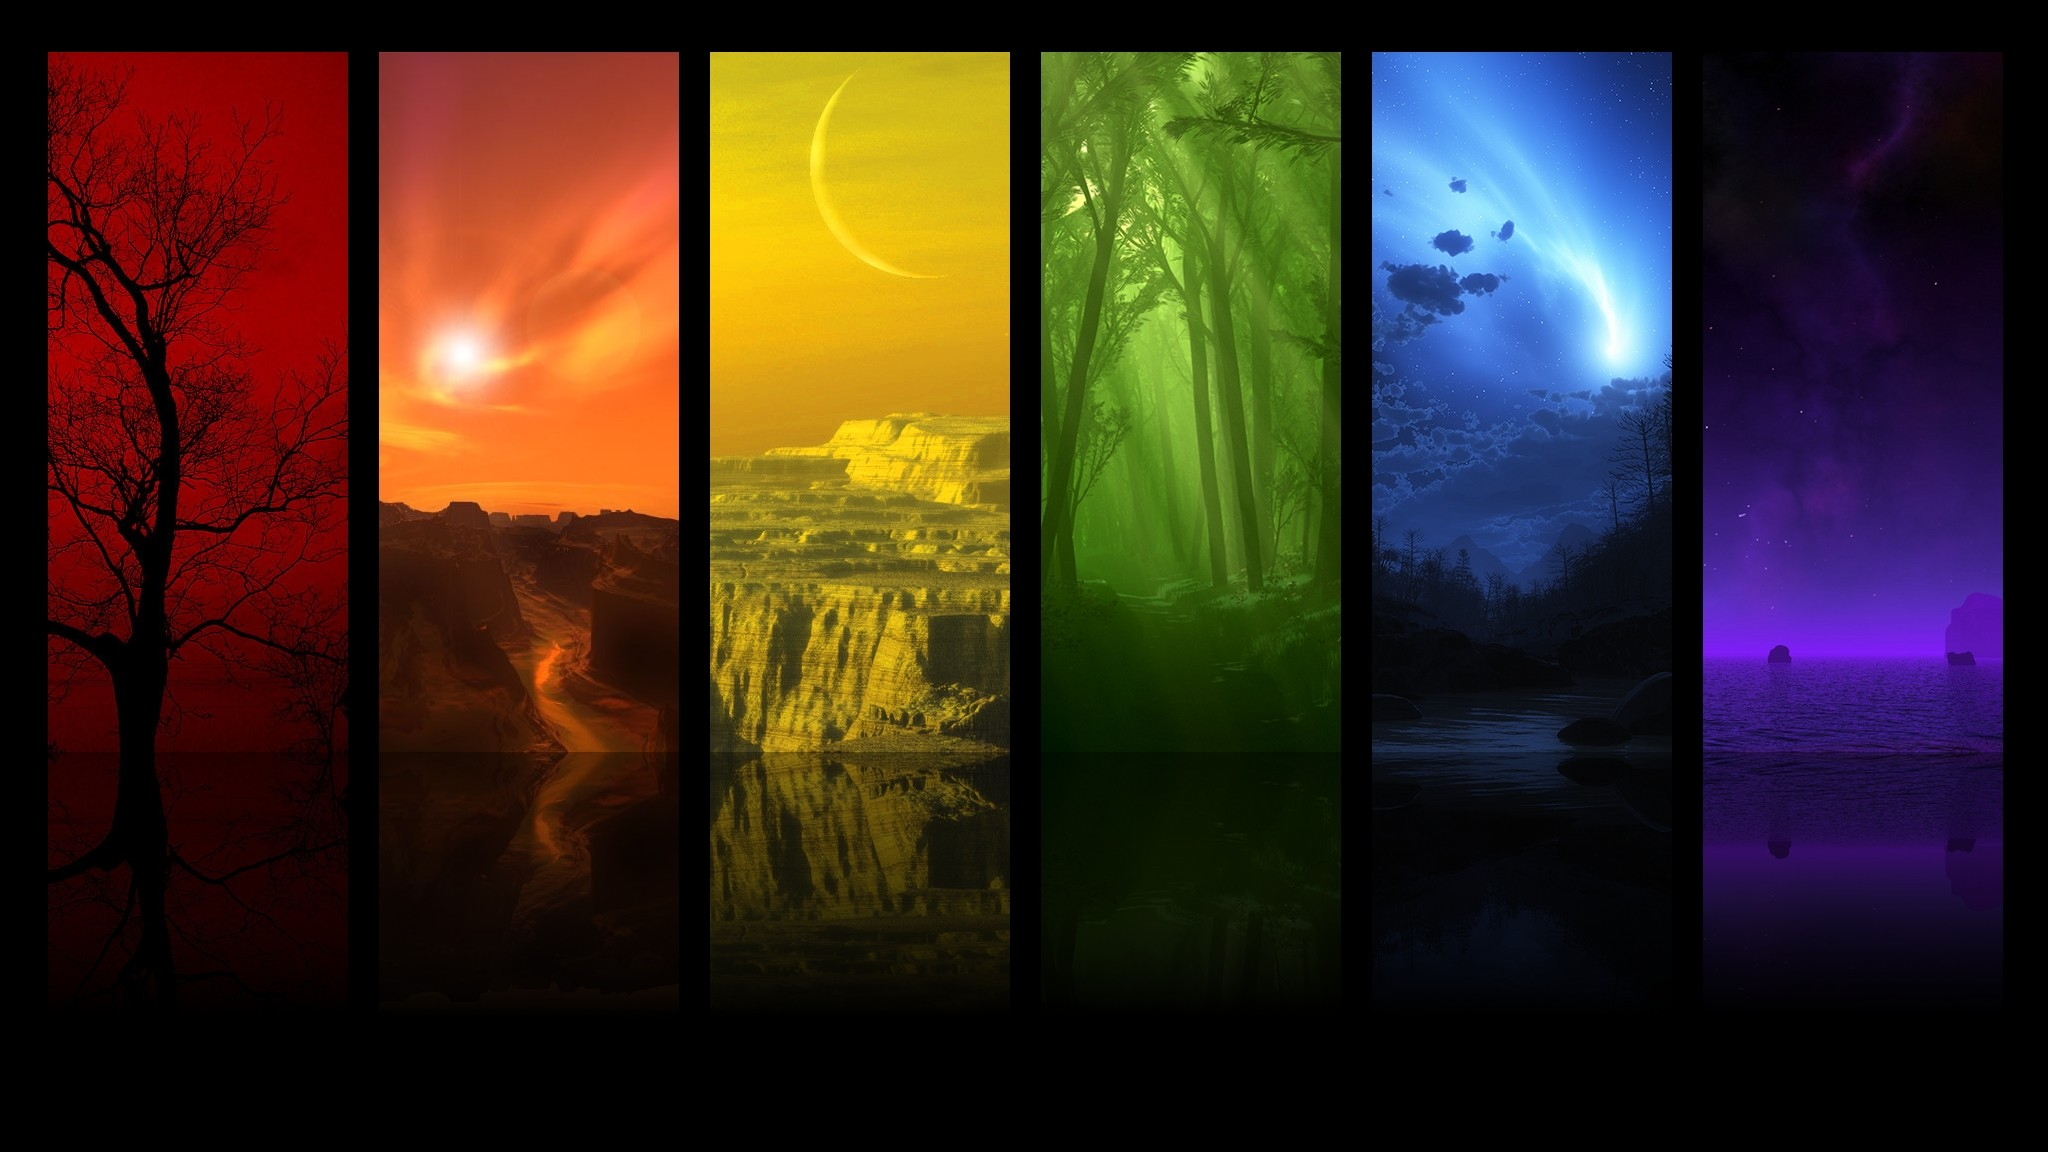 Trippy landscape wallpaper 61 pictures - Digital art wallpaper 3840x1080 ...